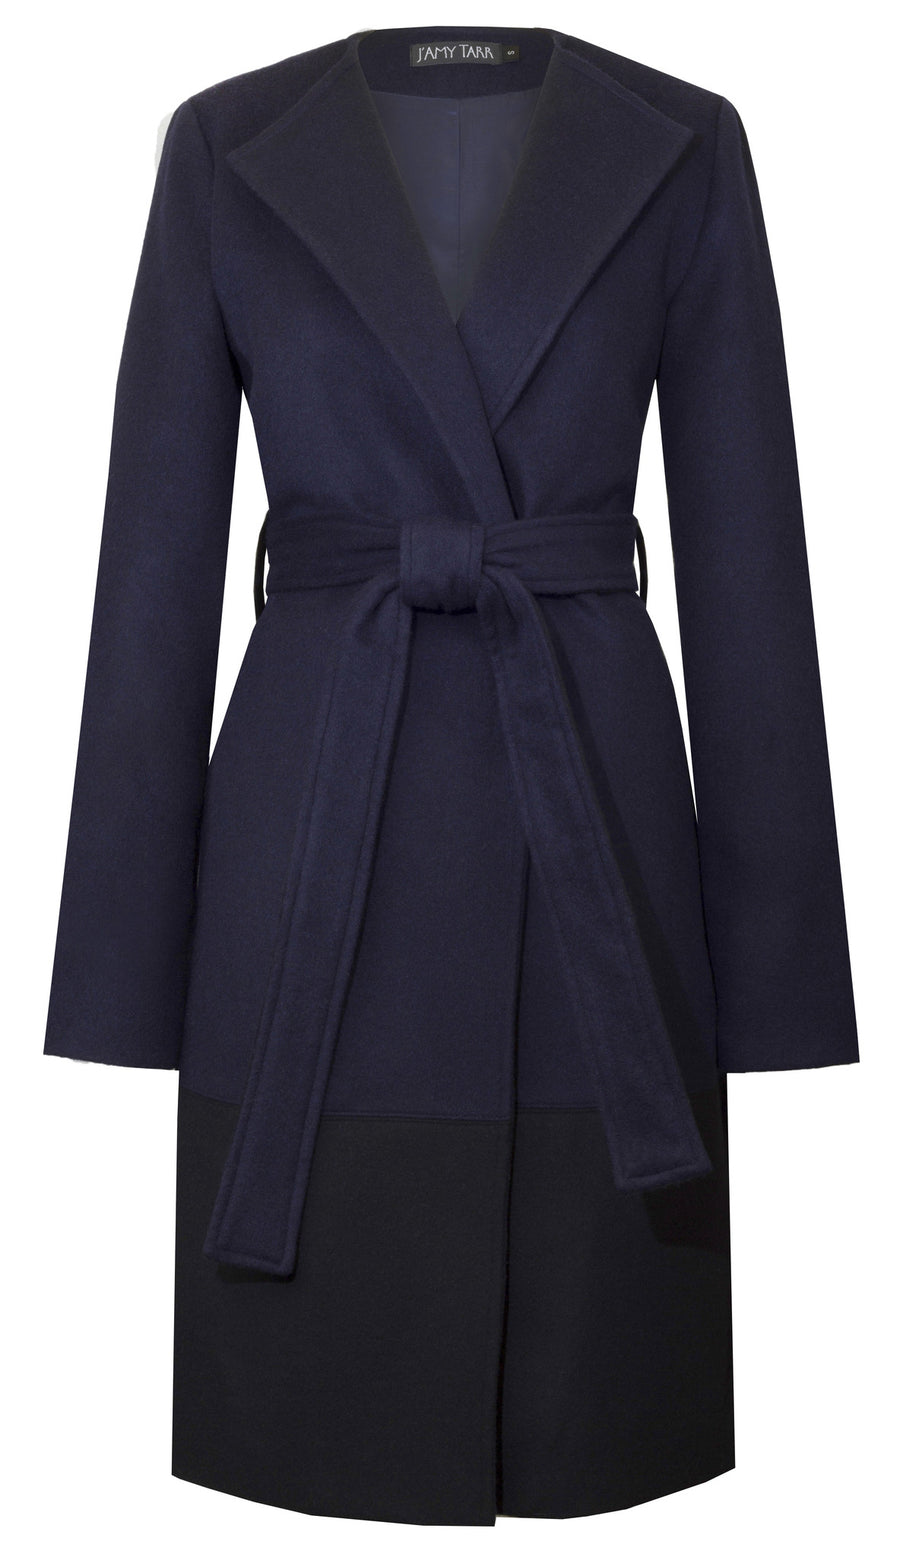 The Blanket Coat in Navy